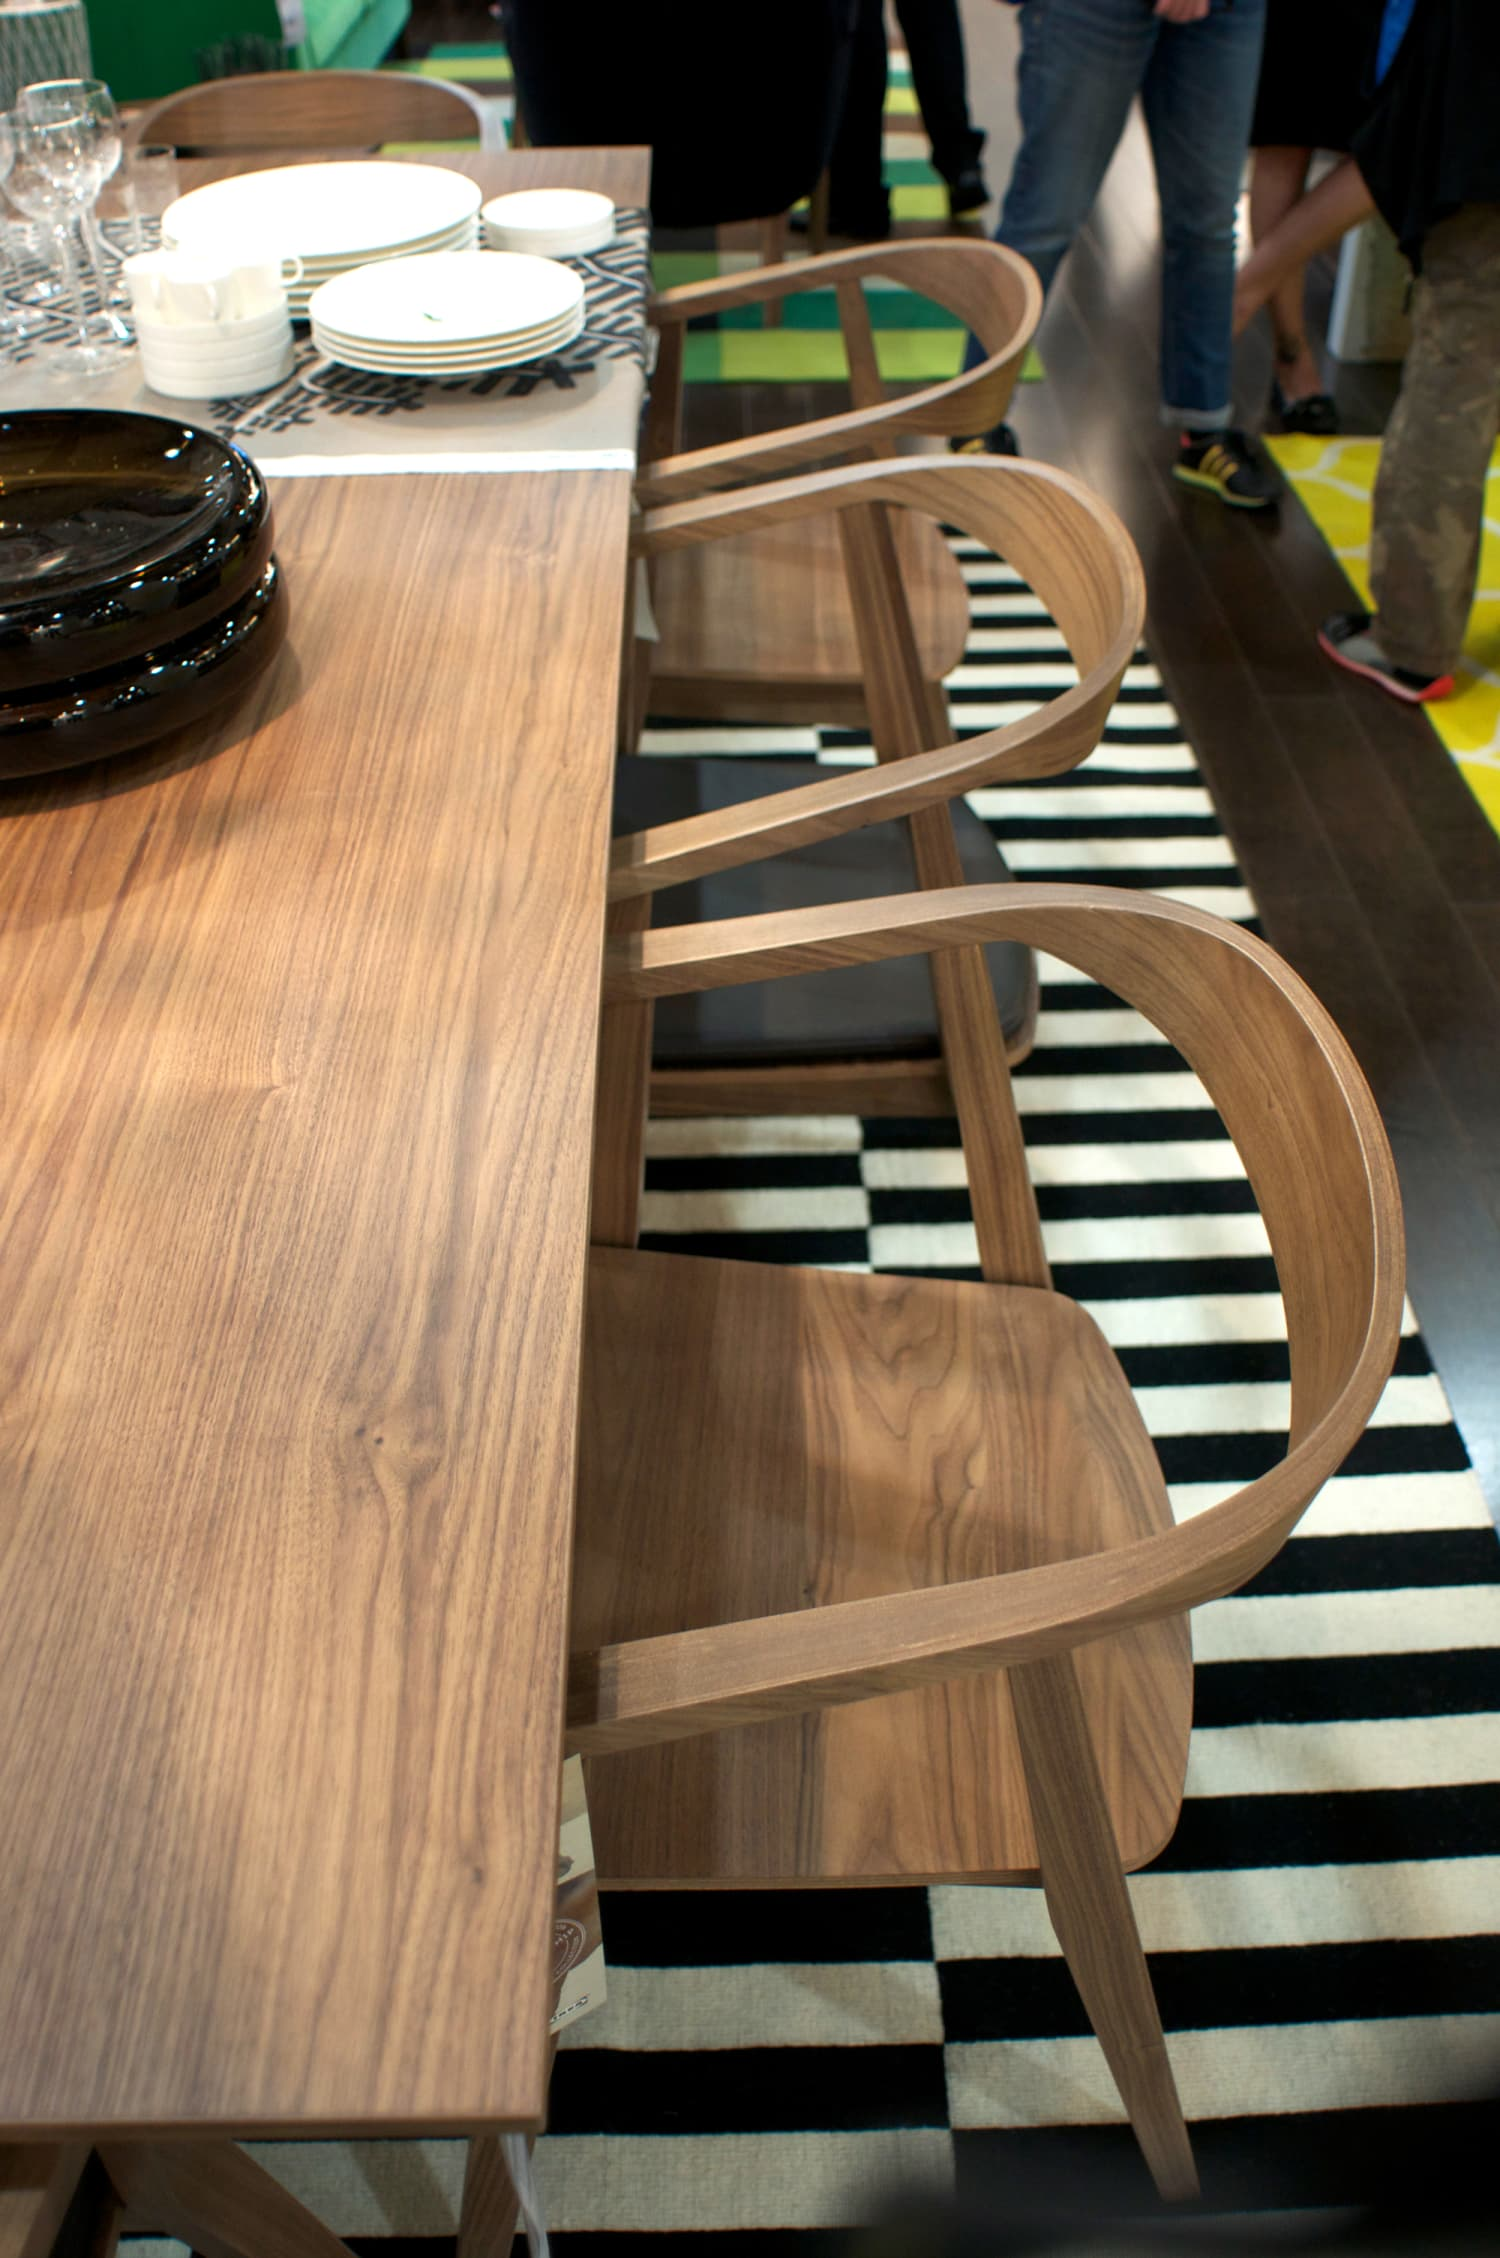 New From IKEA! The Stockholm Table And Chairs, Coming In